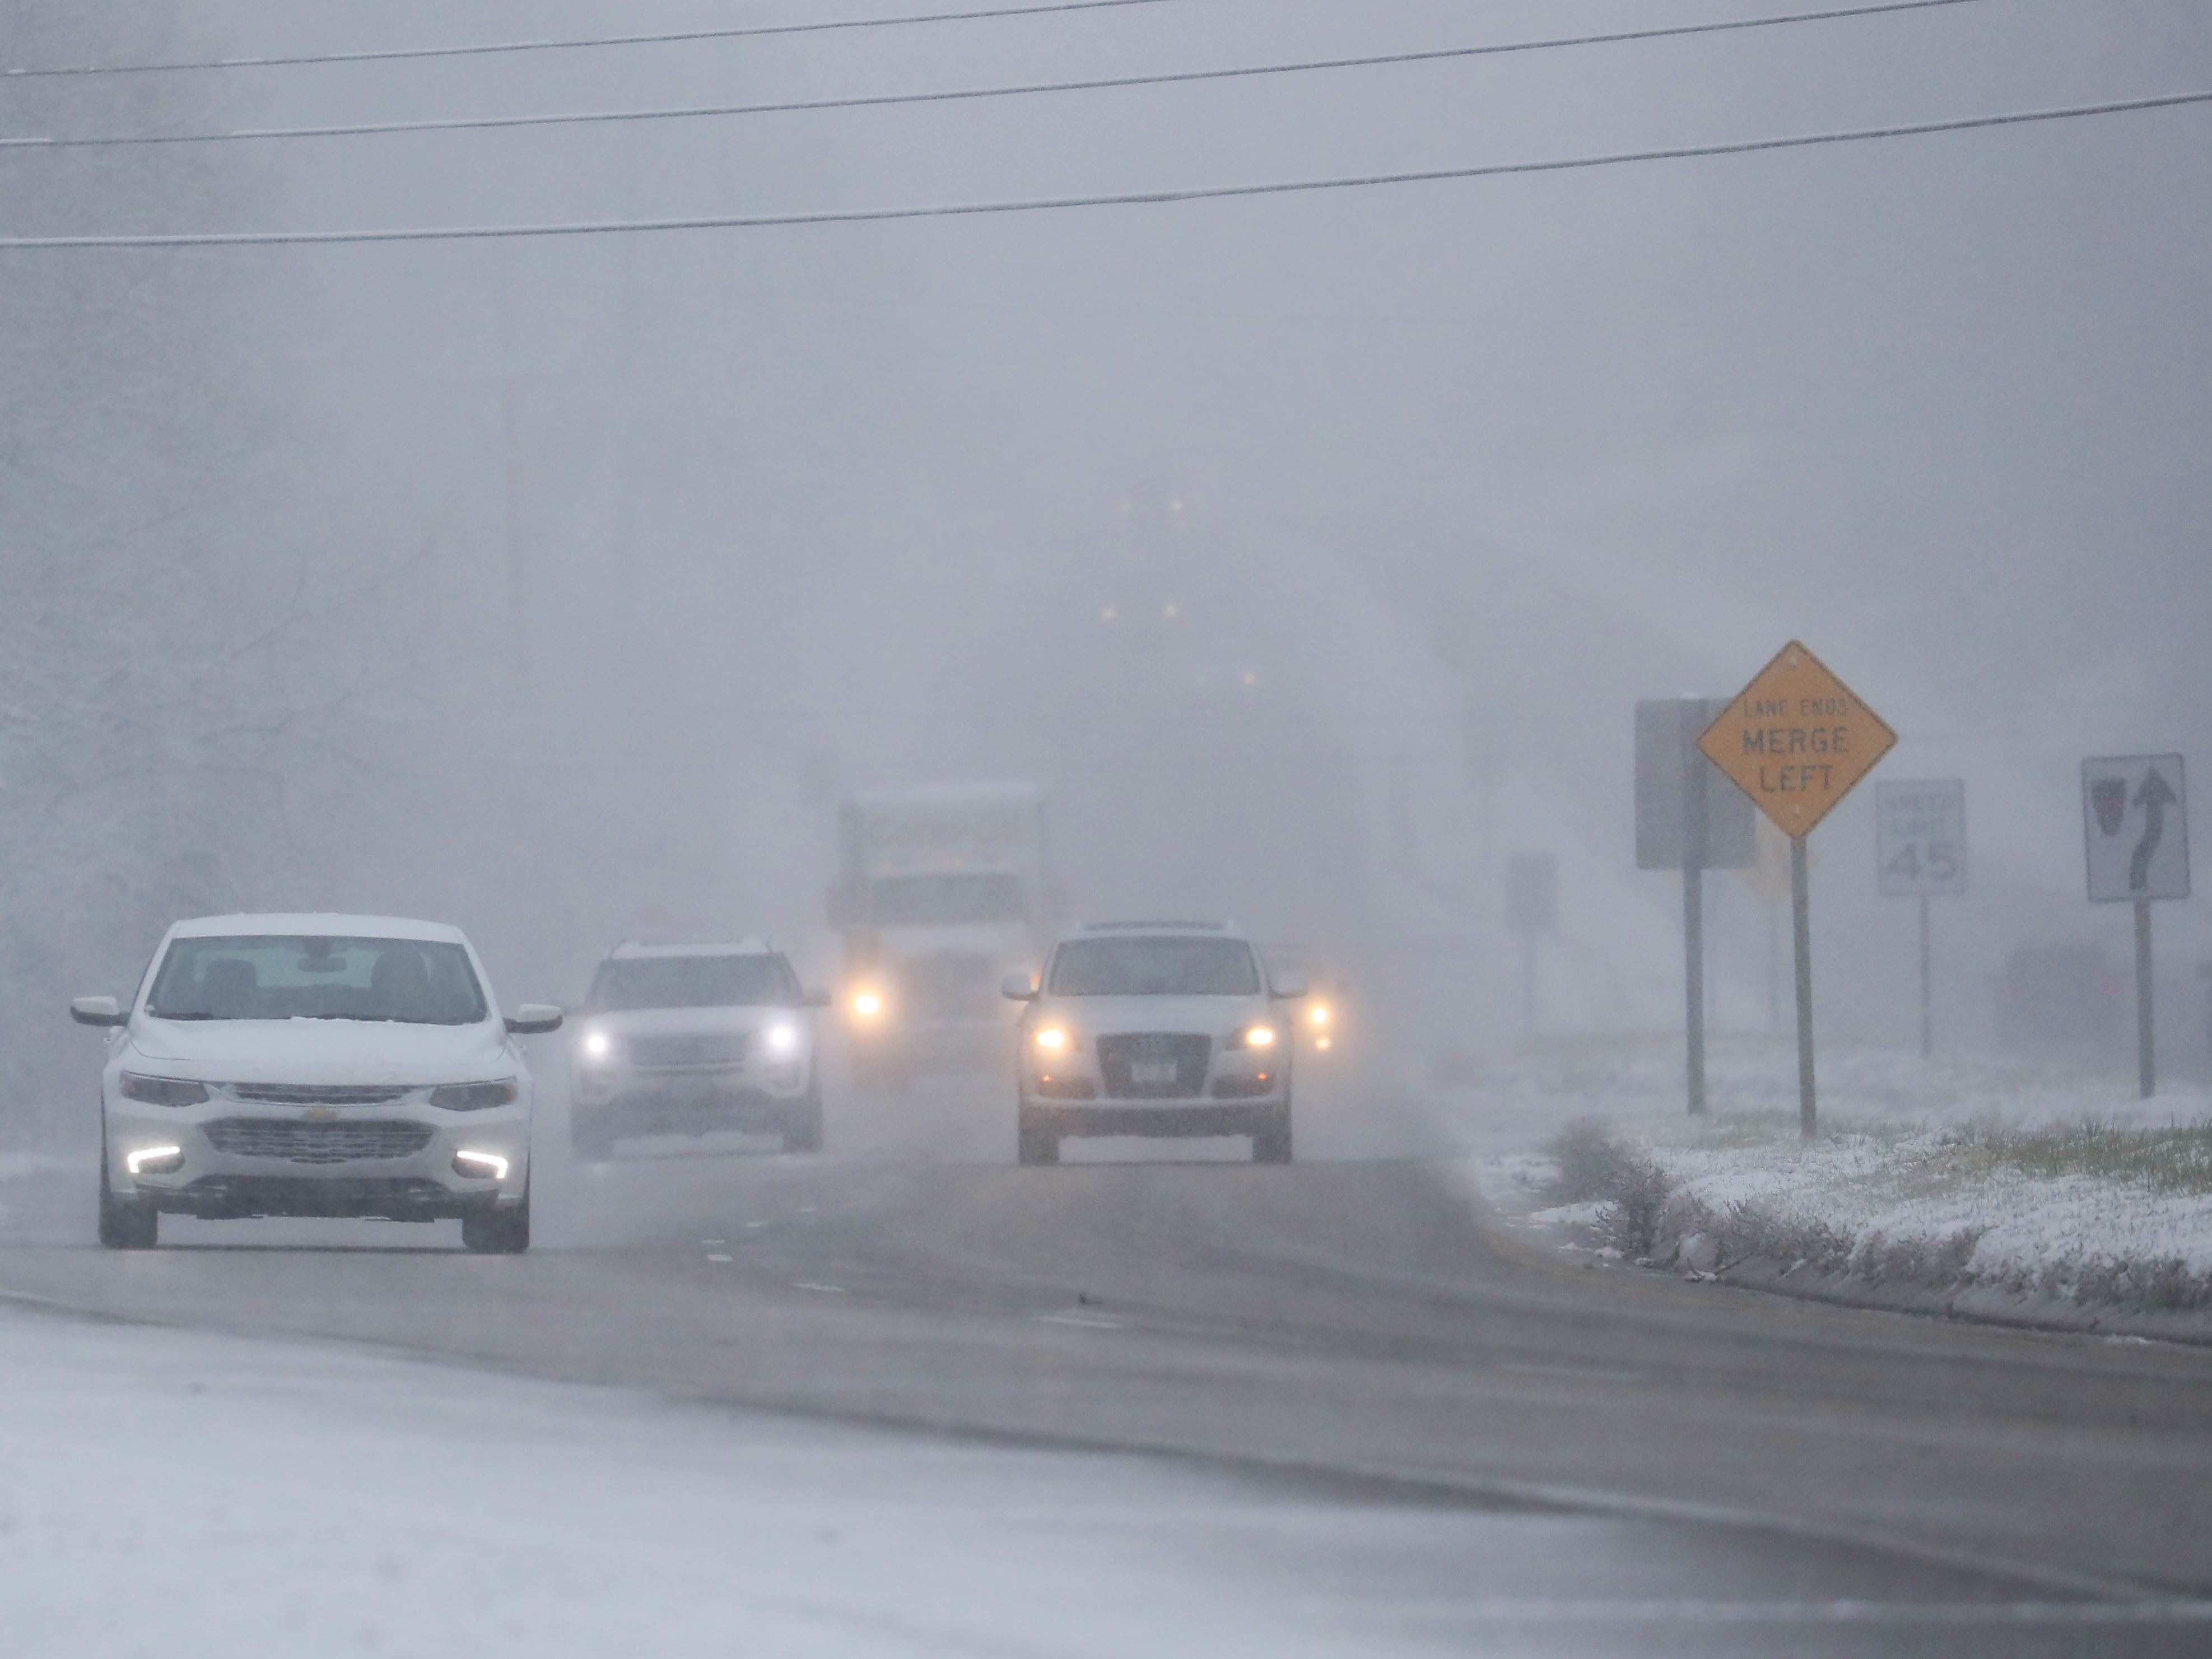 Drivers are greeted by winter's return as they head south on Highway 83 in Delafield.